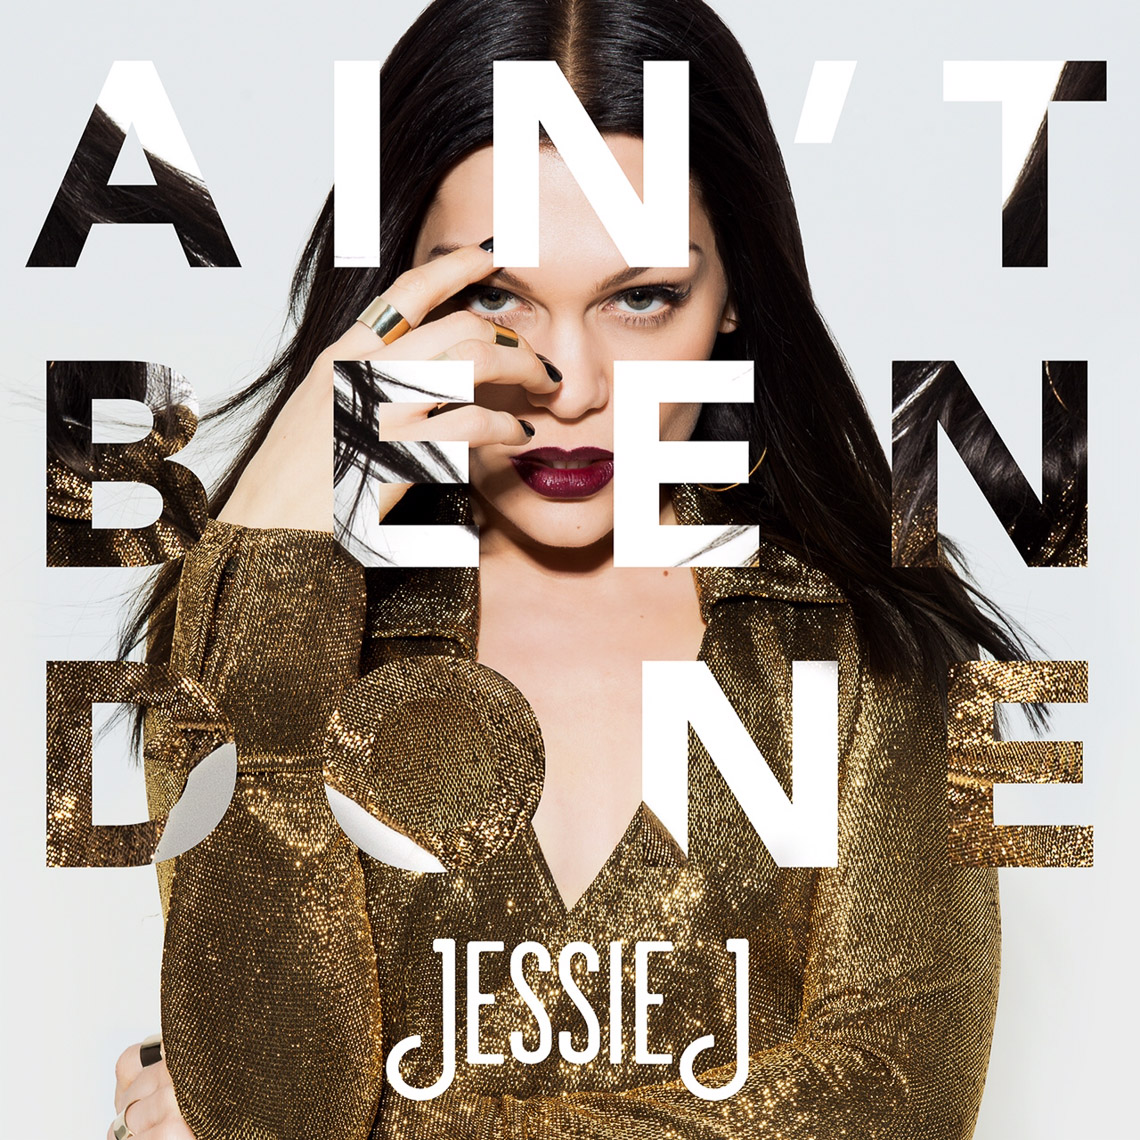 1-Jessie J_Aint Been Done